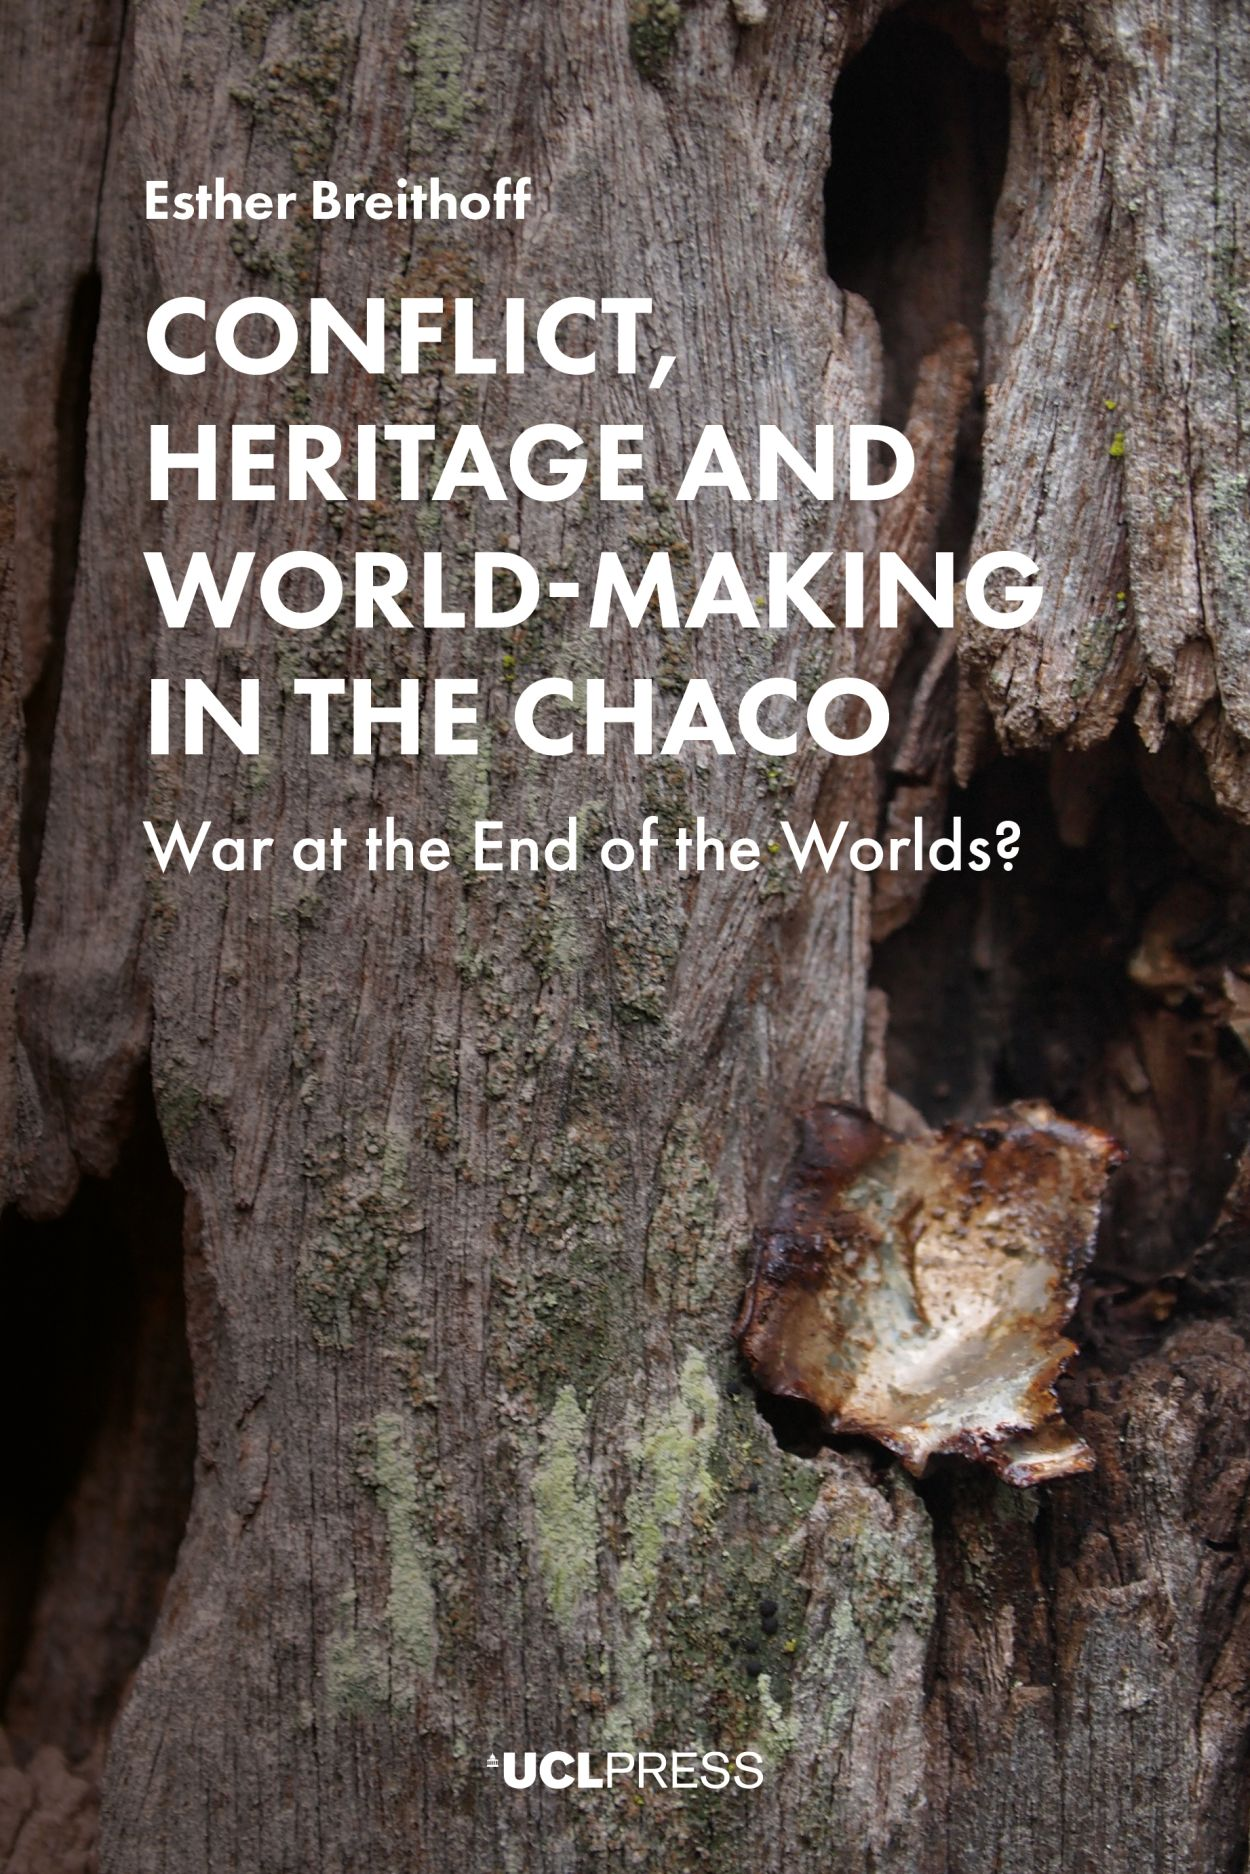 Conflict, Heritage and World-Making in the Chaco: War at the End of the Worlds?